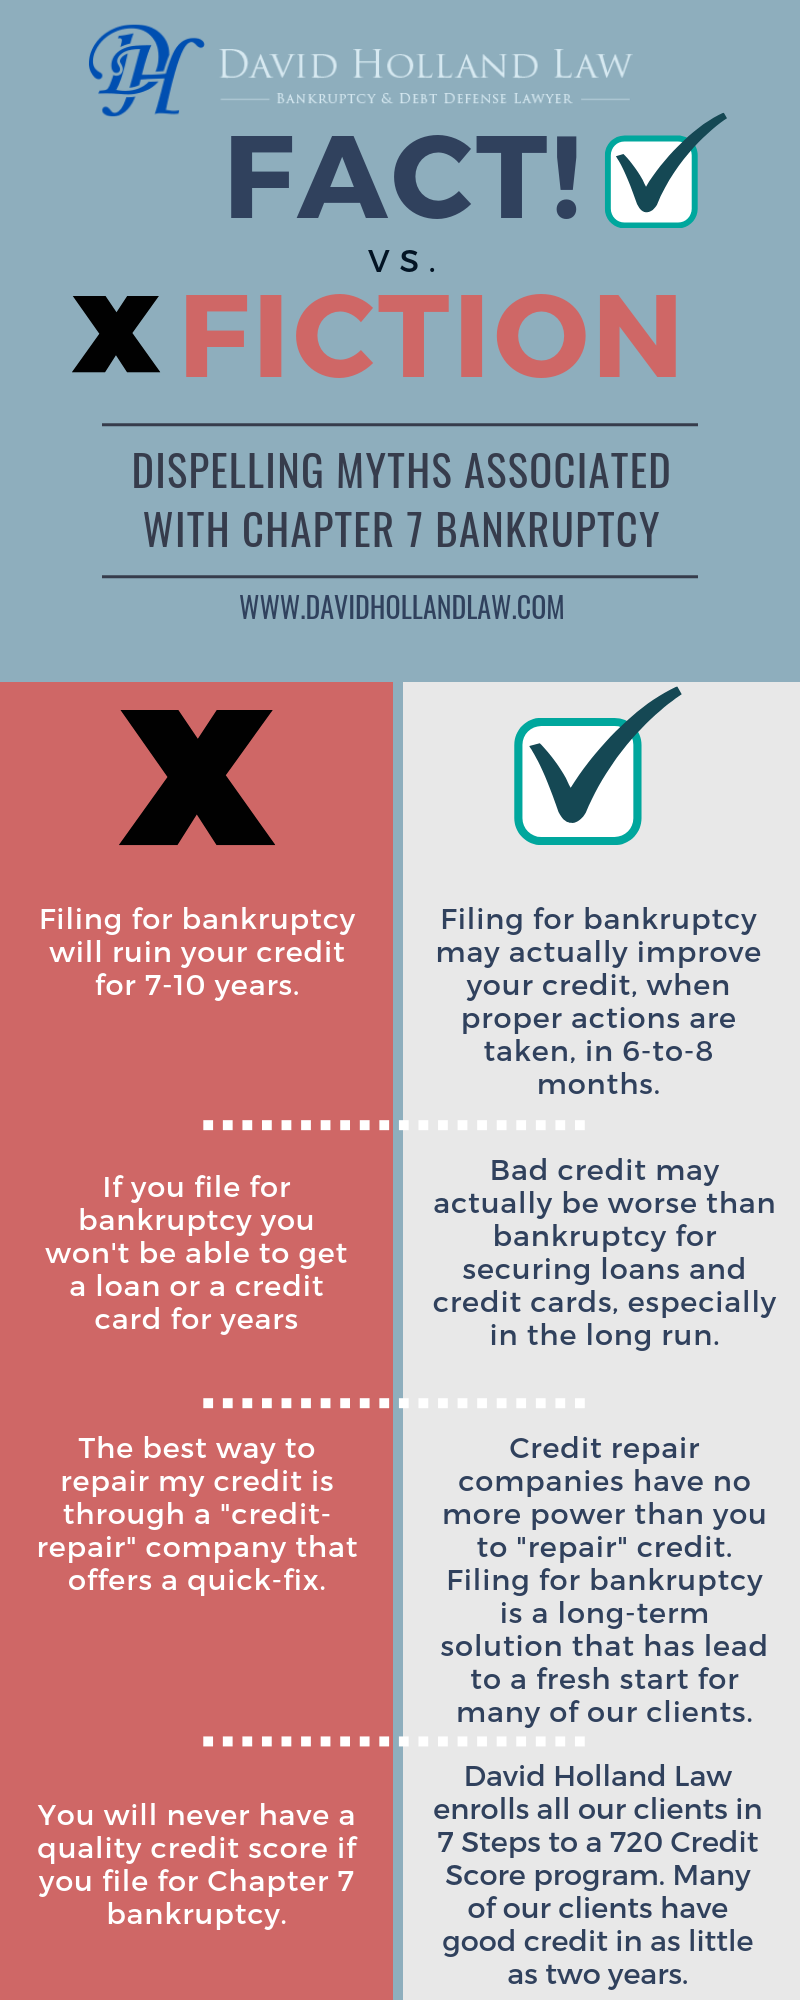 Dispelling myths about Chapter 7 Bankruptcy